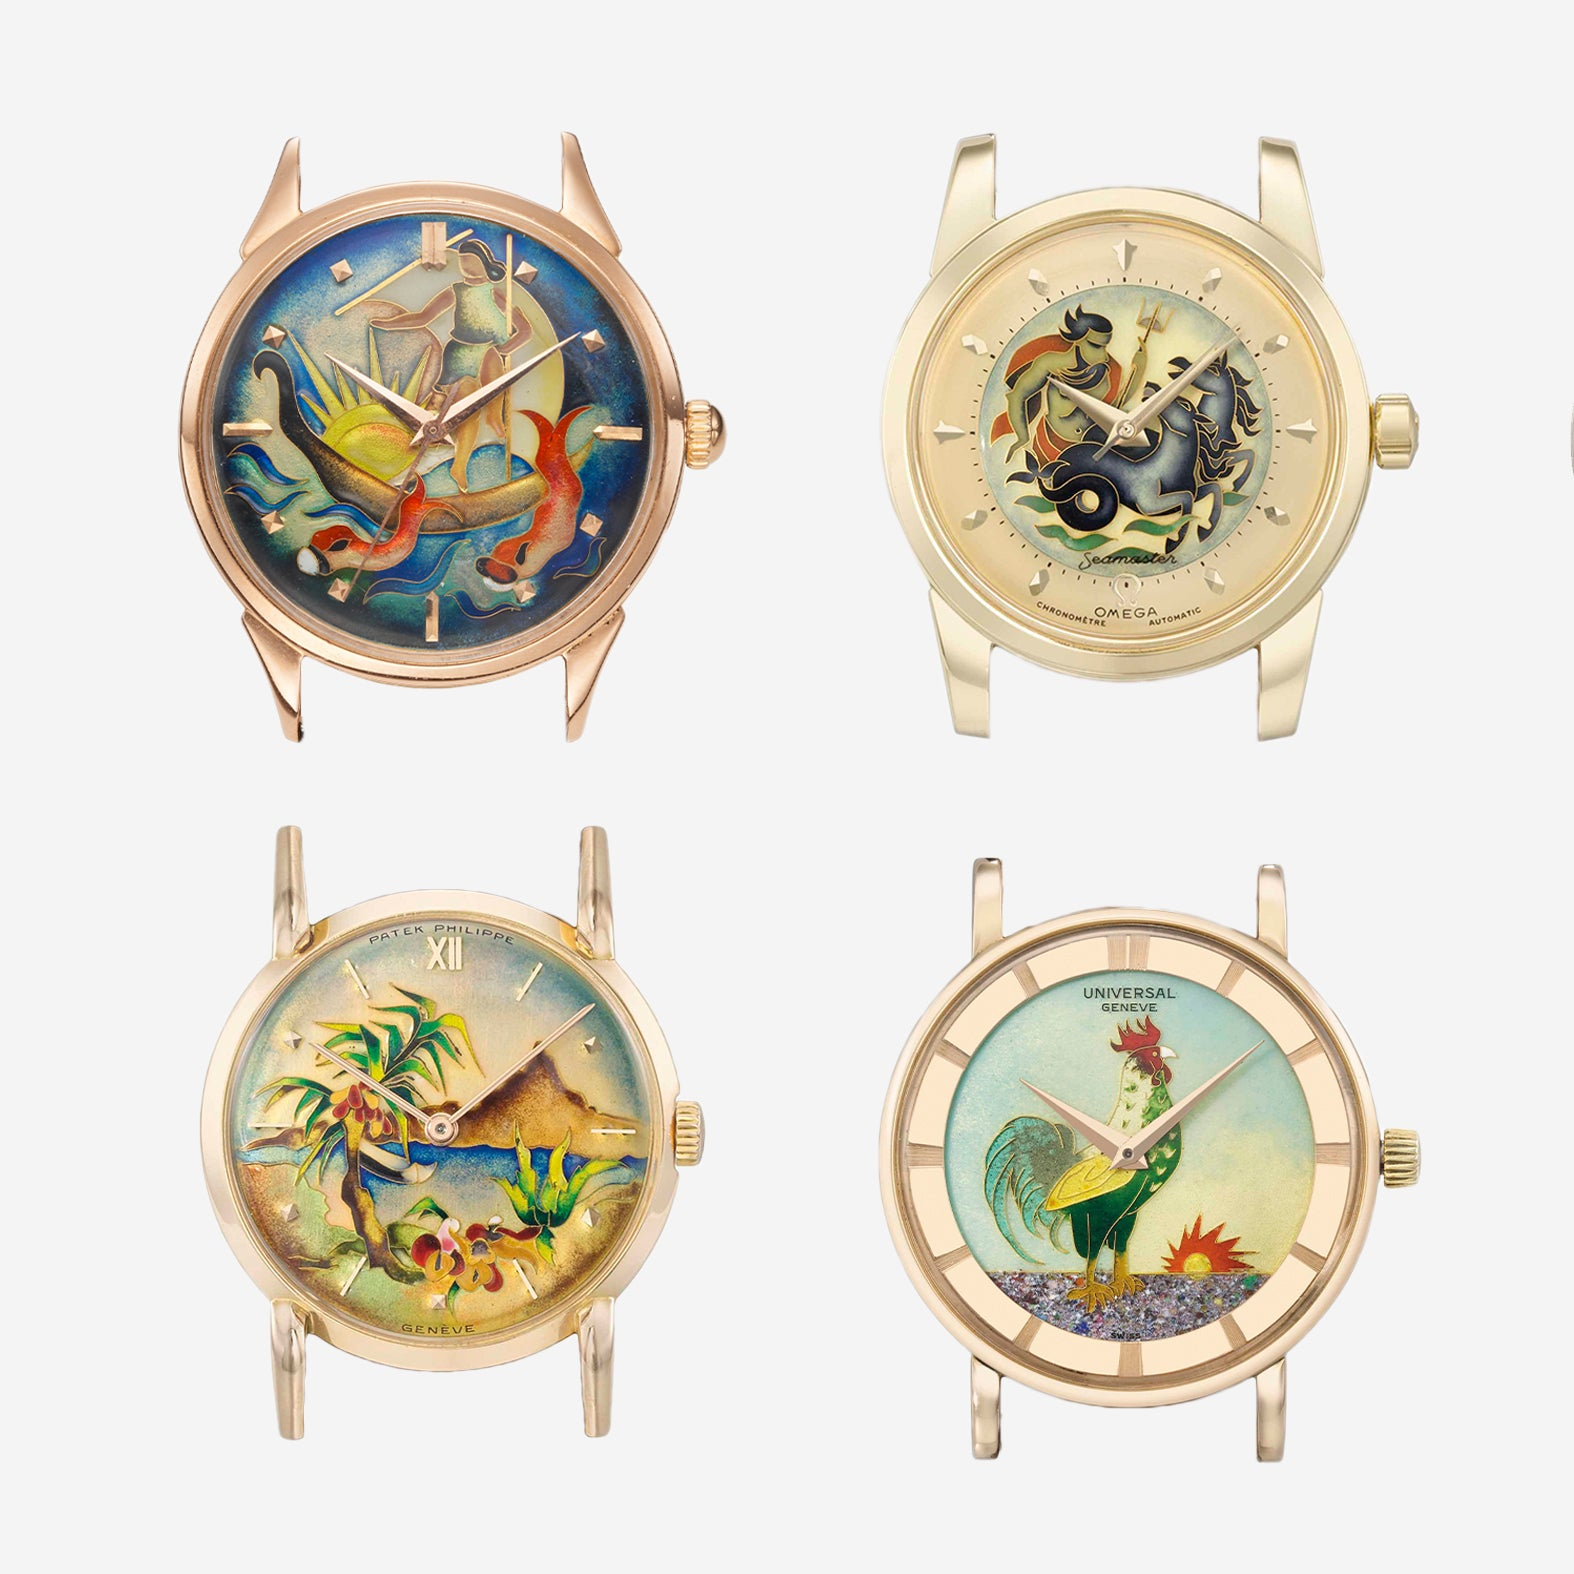 Cloisonne enamel dials from Patek Philippe, Omega, Universal Geneve and Eska for A Collected Man London